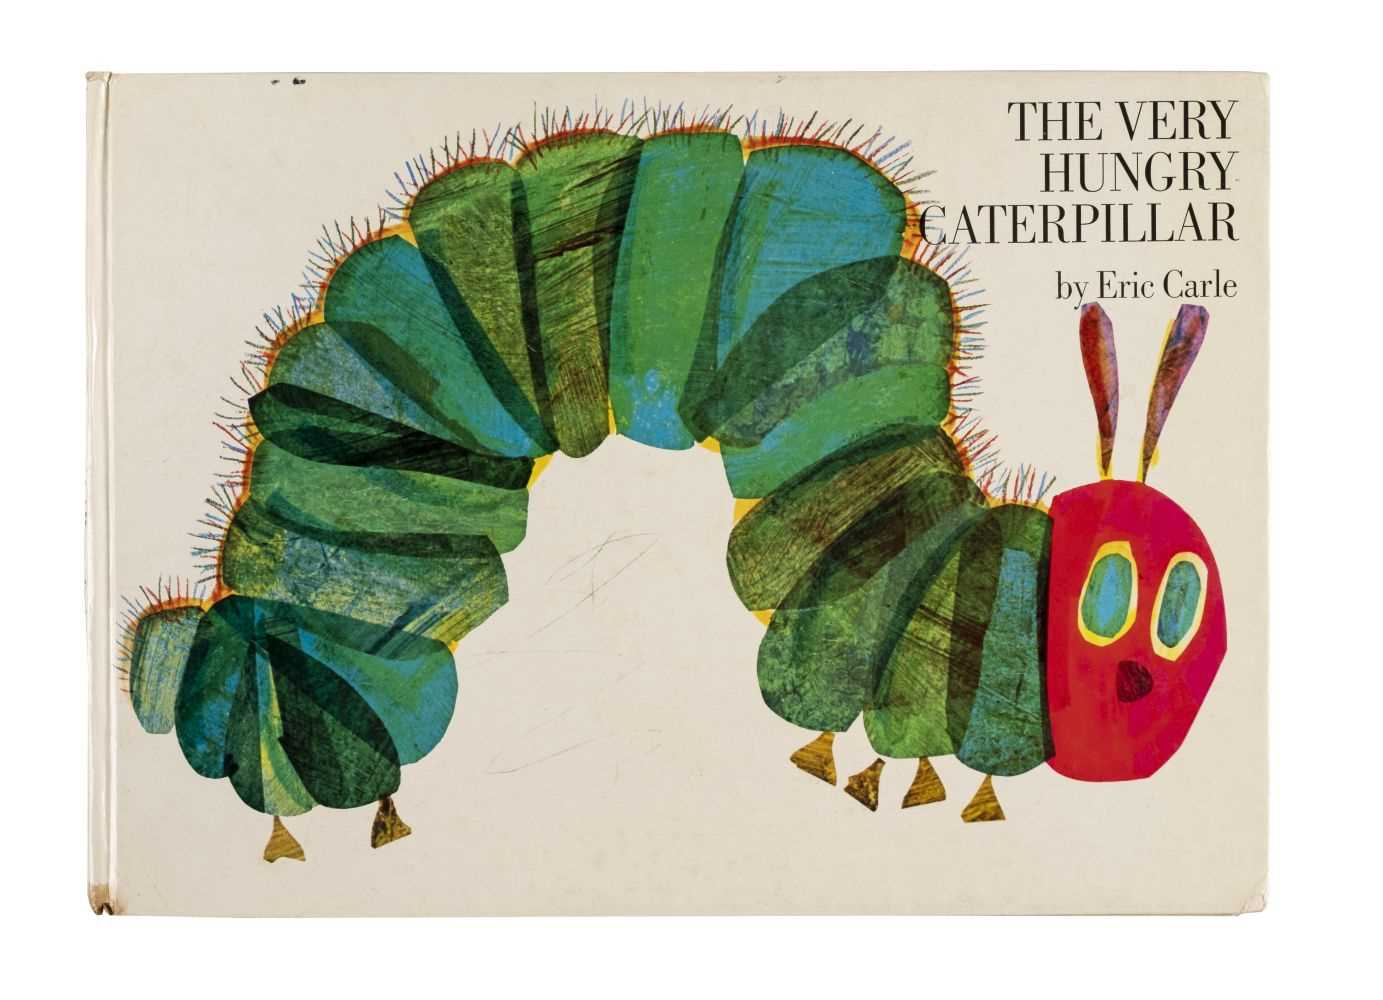 Lot 602 - Carle (Eric). The Very Hungry Caterpillar, 1st UK edition, 1970